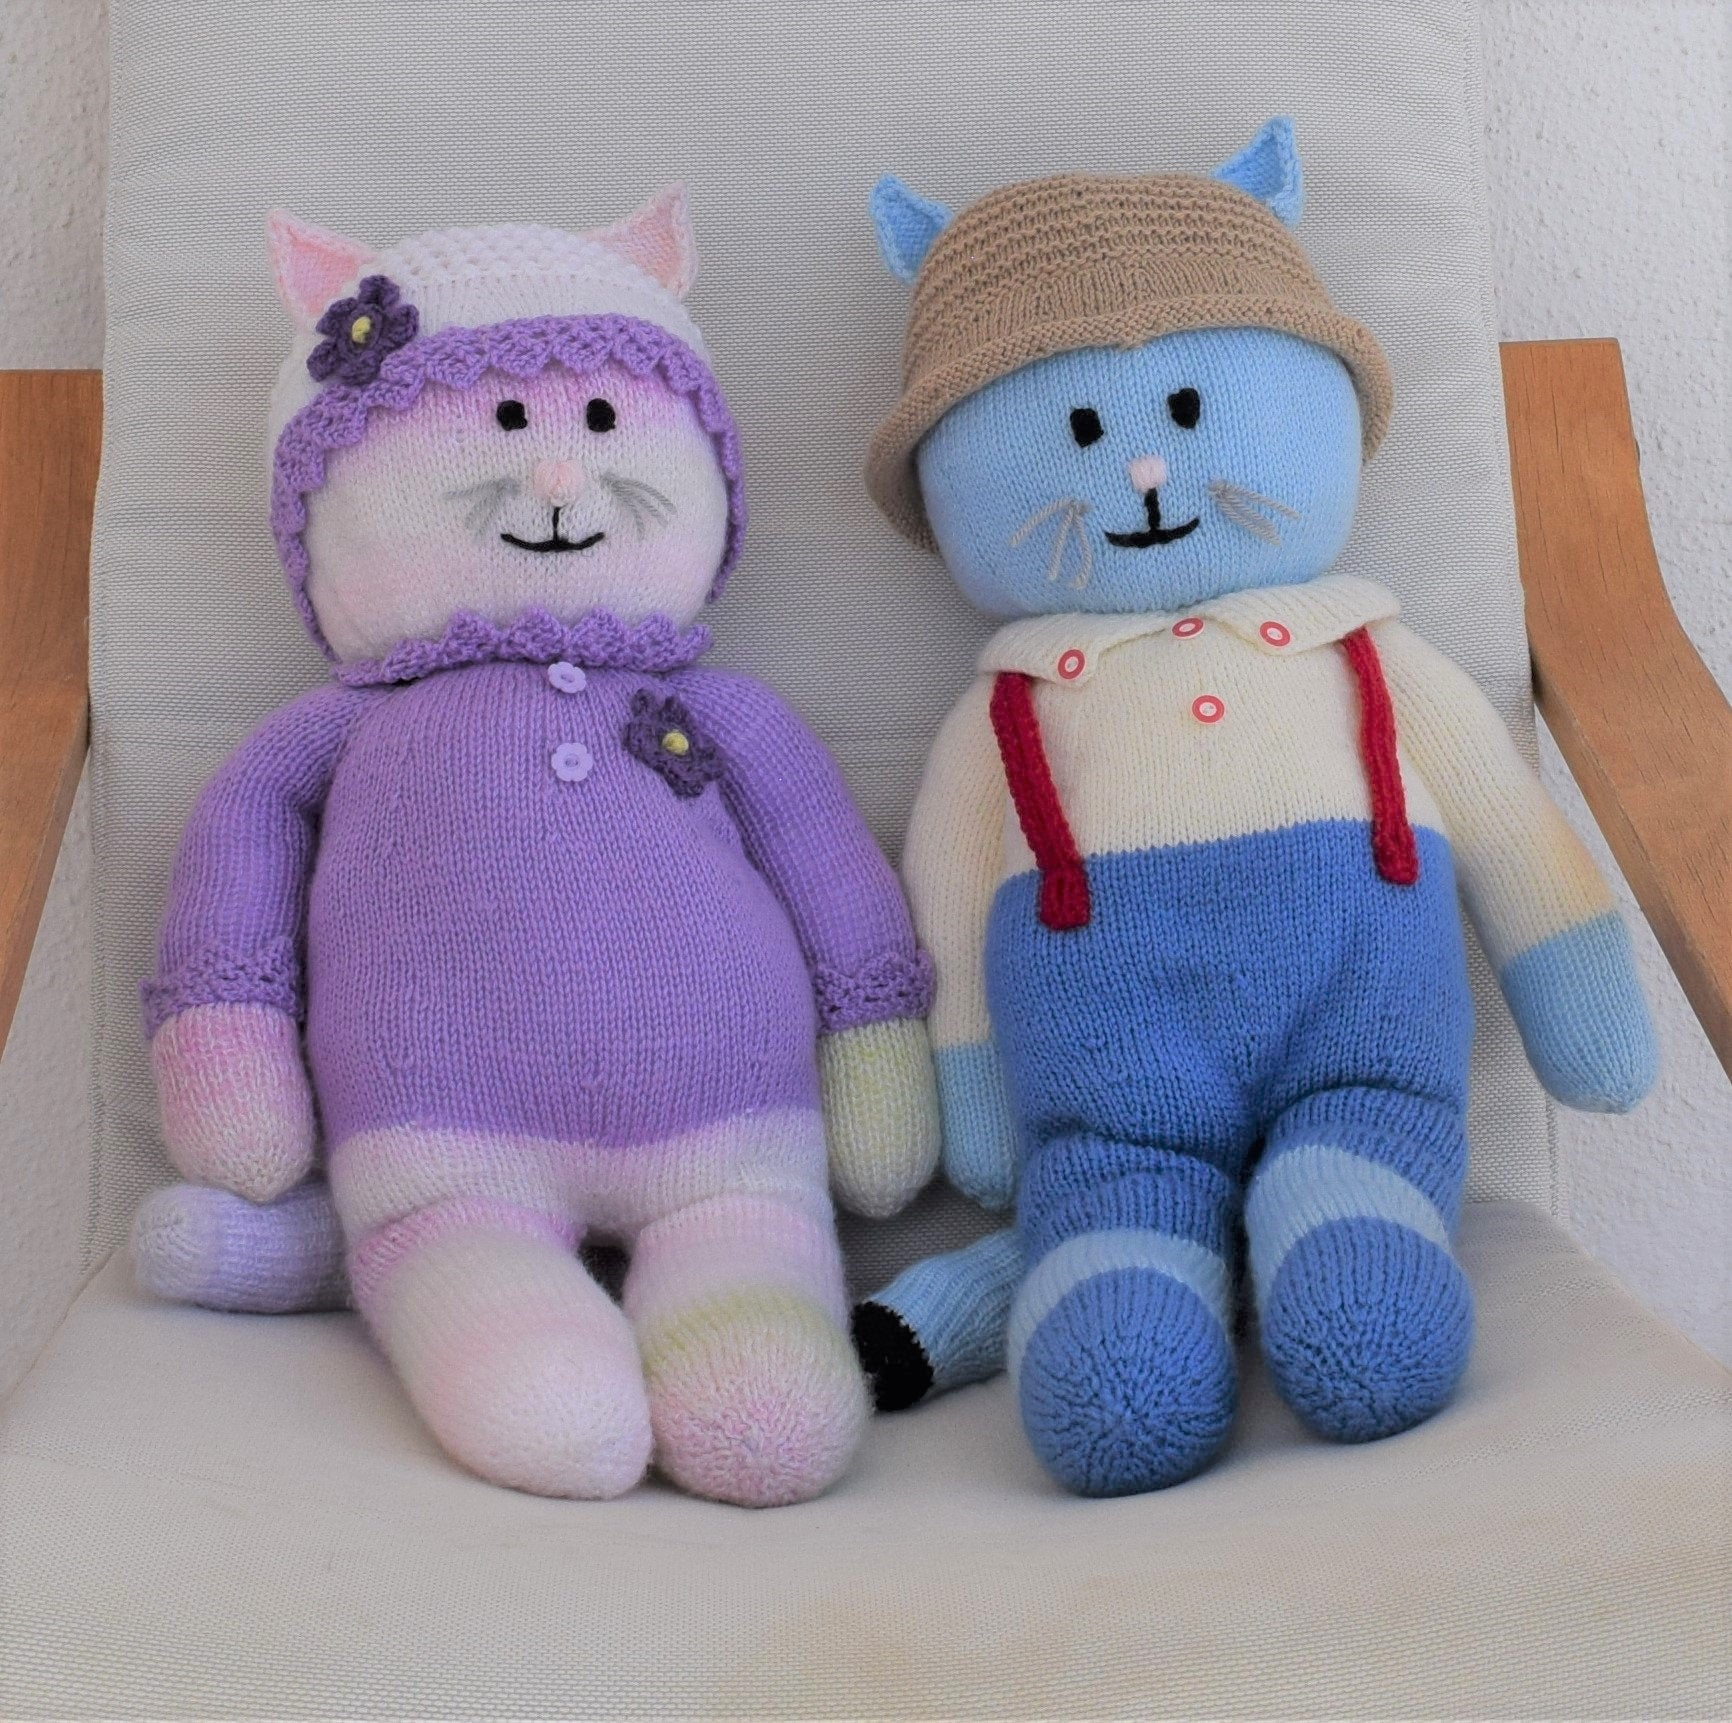 Knitting Patterns For Baby Toys Boy And Girl Cat Knitting Pattern Knitted Animal Toys Handmade